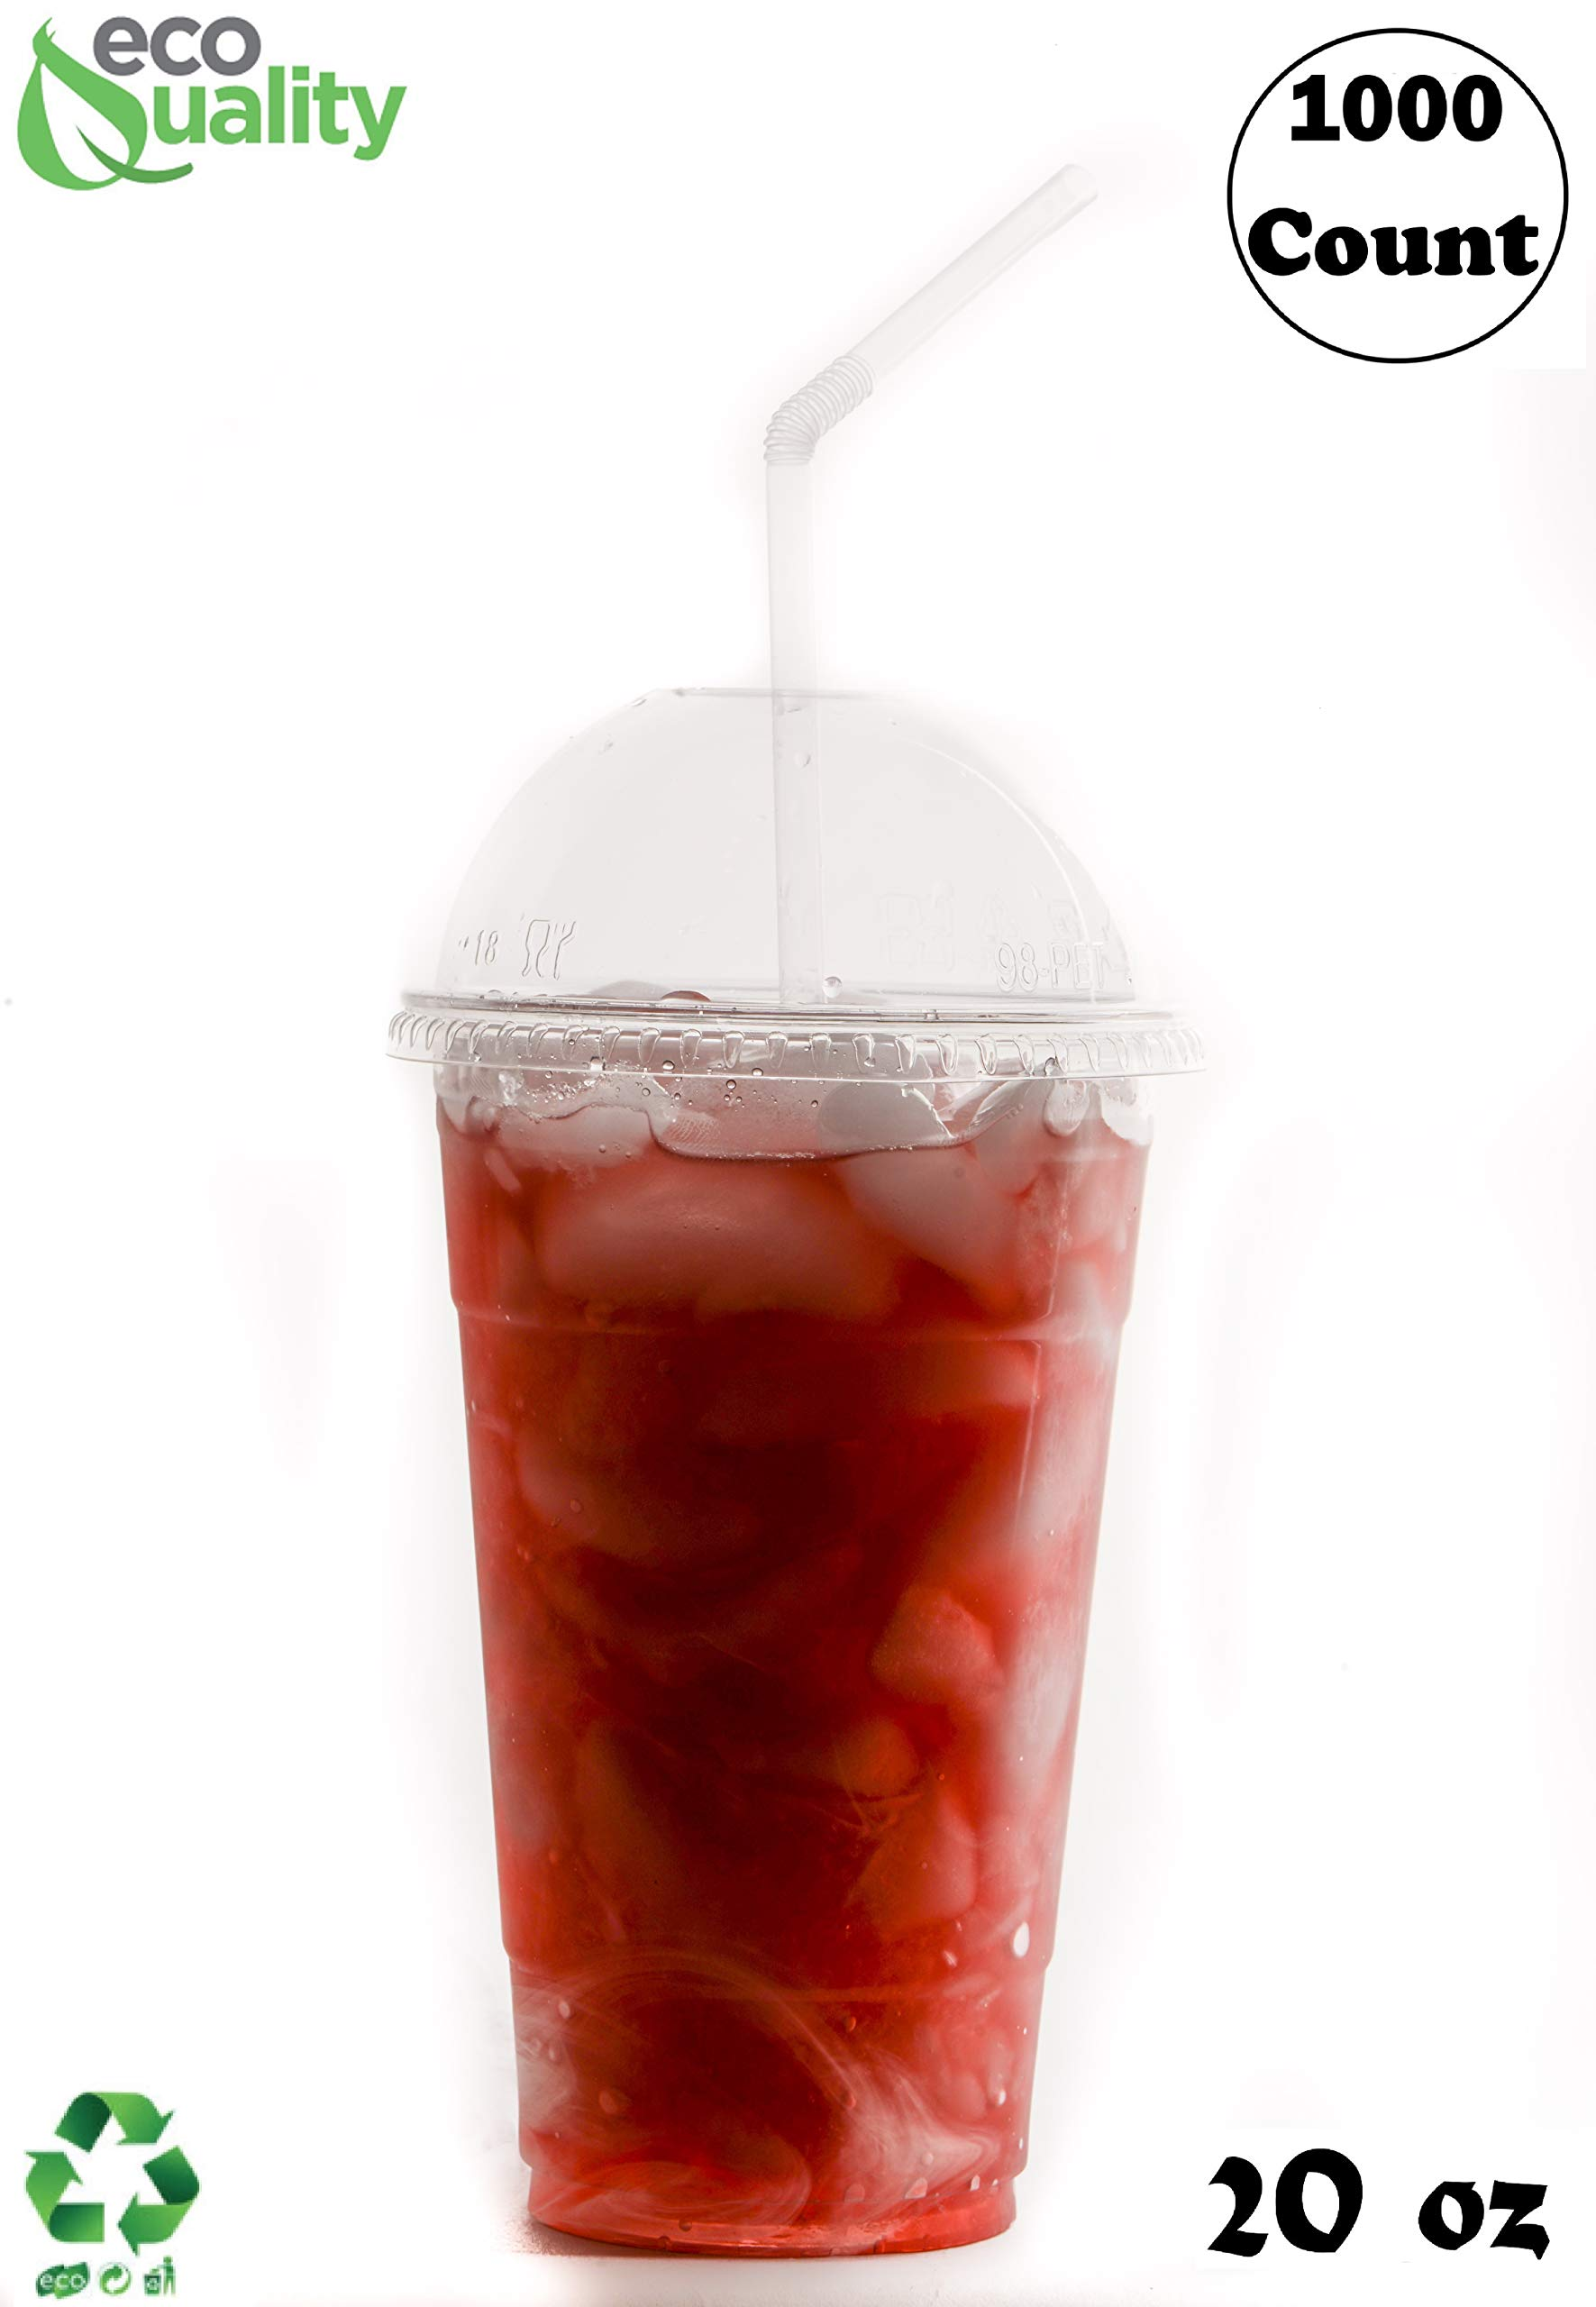 20 oz Cups, 1000 Pack | Iced Coffee Go Cups and Dome Lids | Cold Smoothie | Plastic Cups with Dome Lids | Clear Plastic Disposable Pet Cup | Ideal for Coffee, Parfait, Juice, Soda, Cocktail,Party Cups